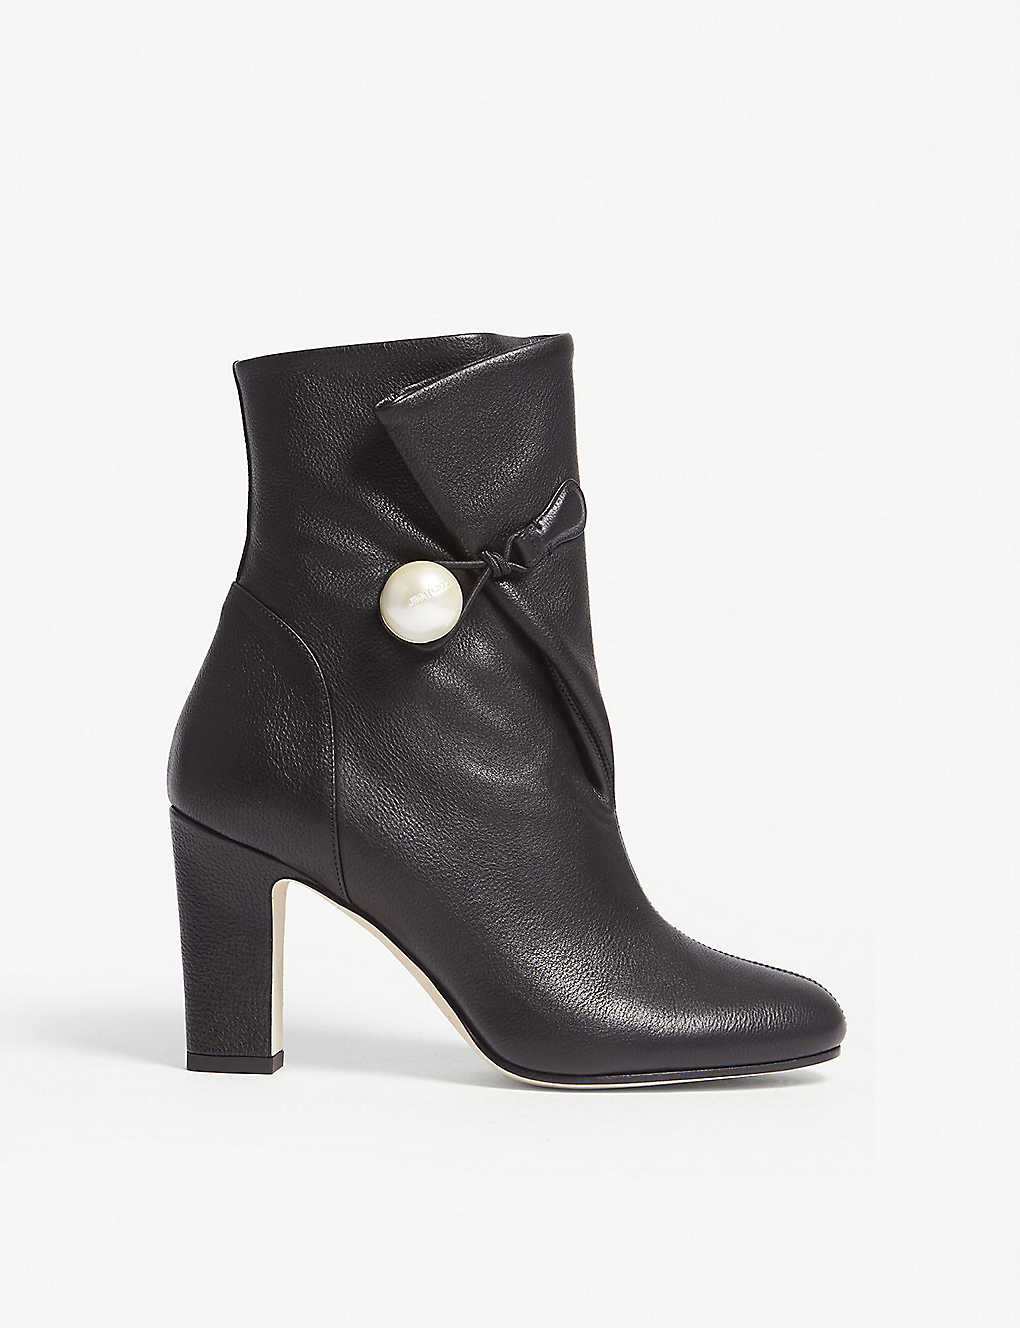 368bd7aebcf2 JIMMY CHOO - Bethanie 85 leather ankle boots